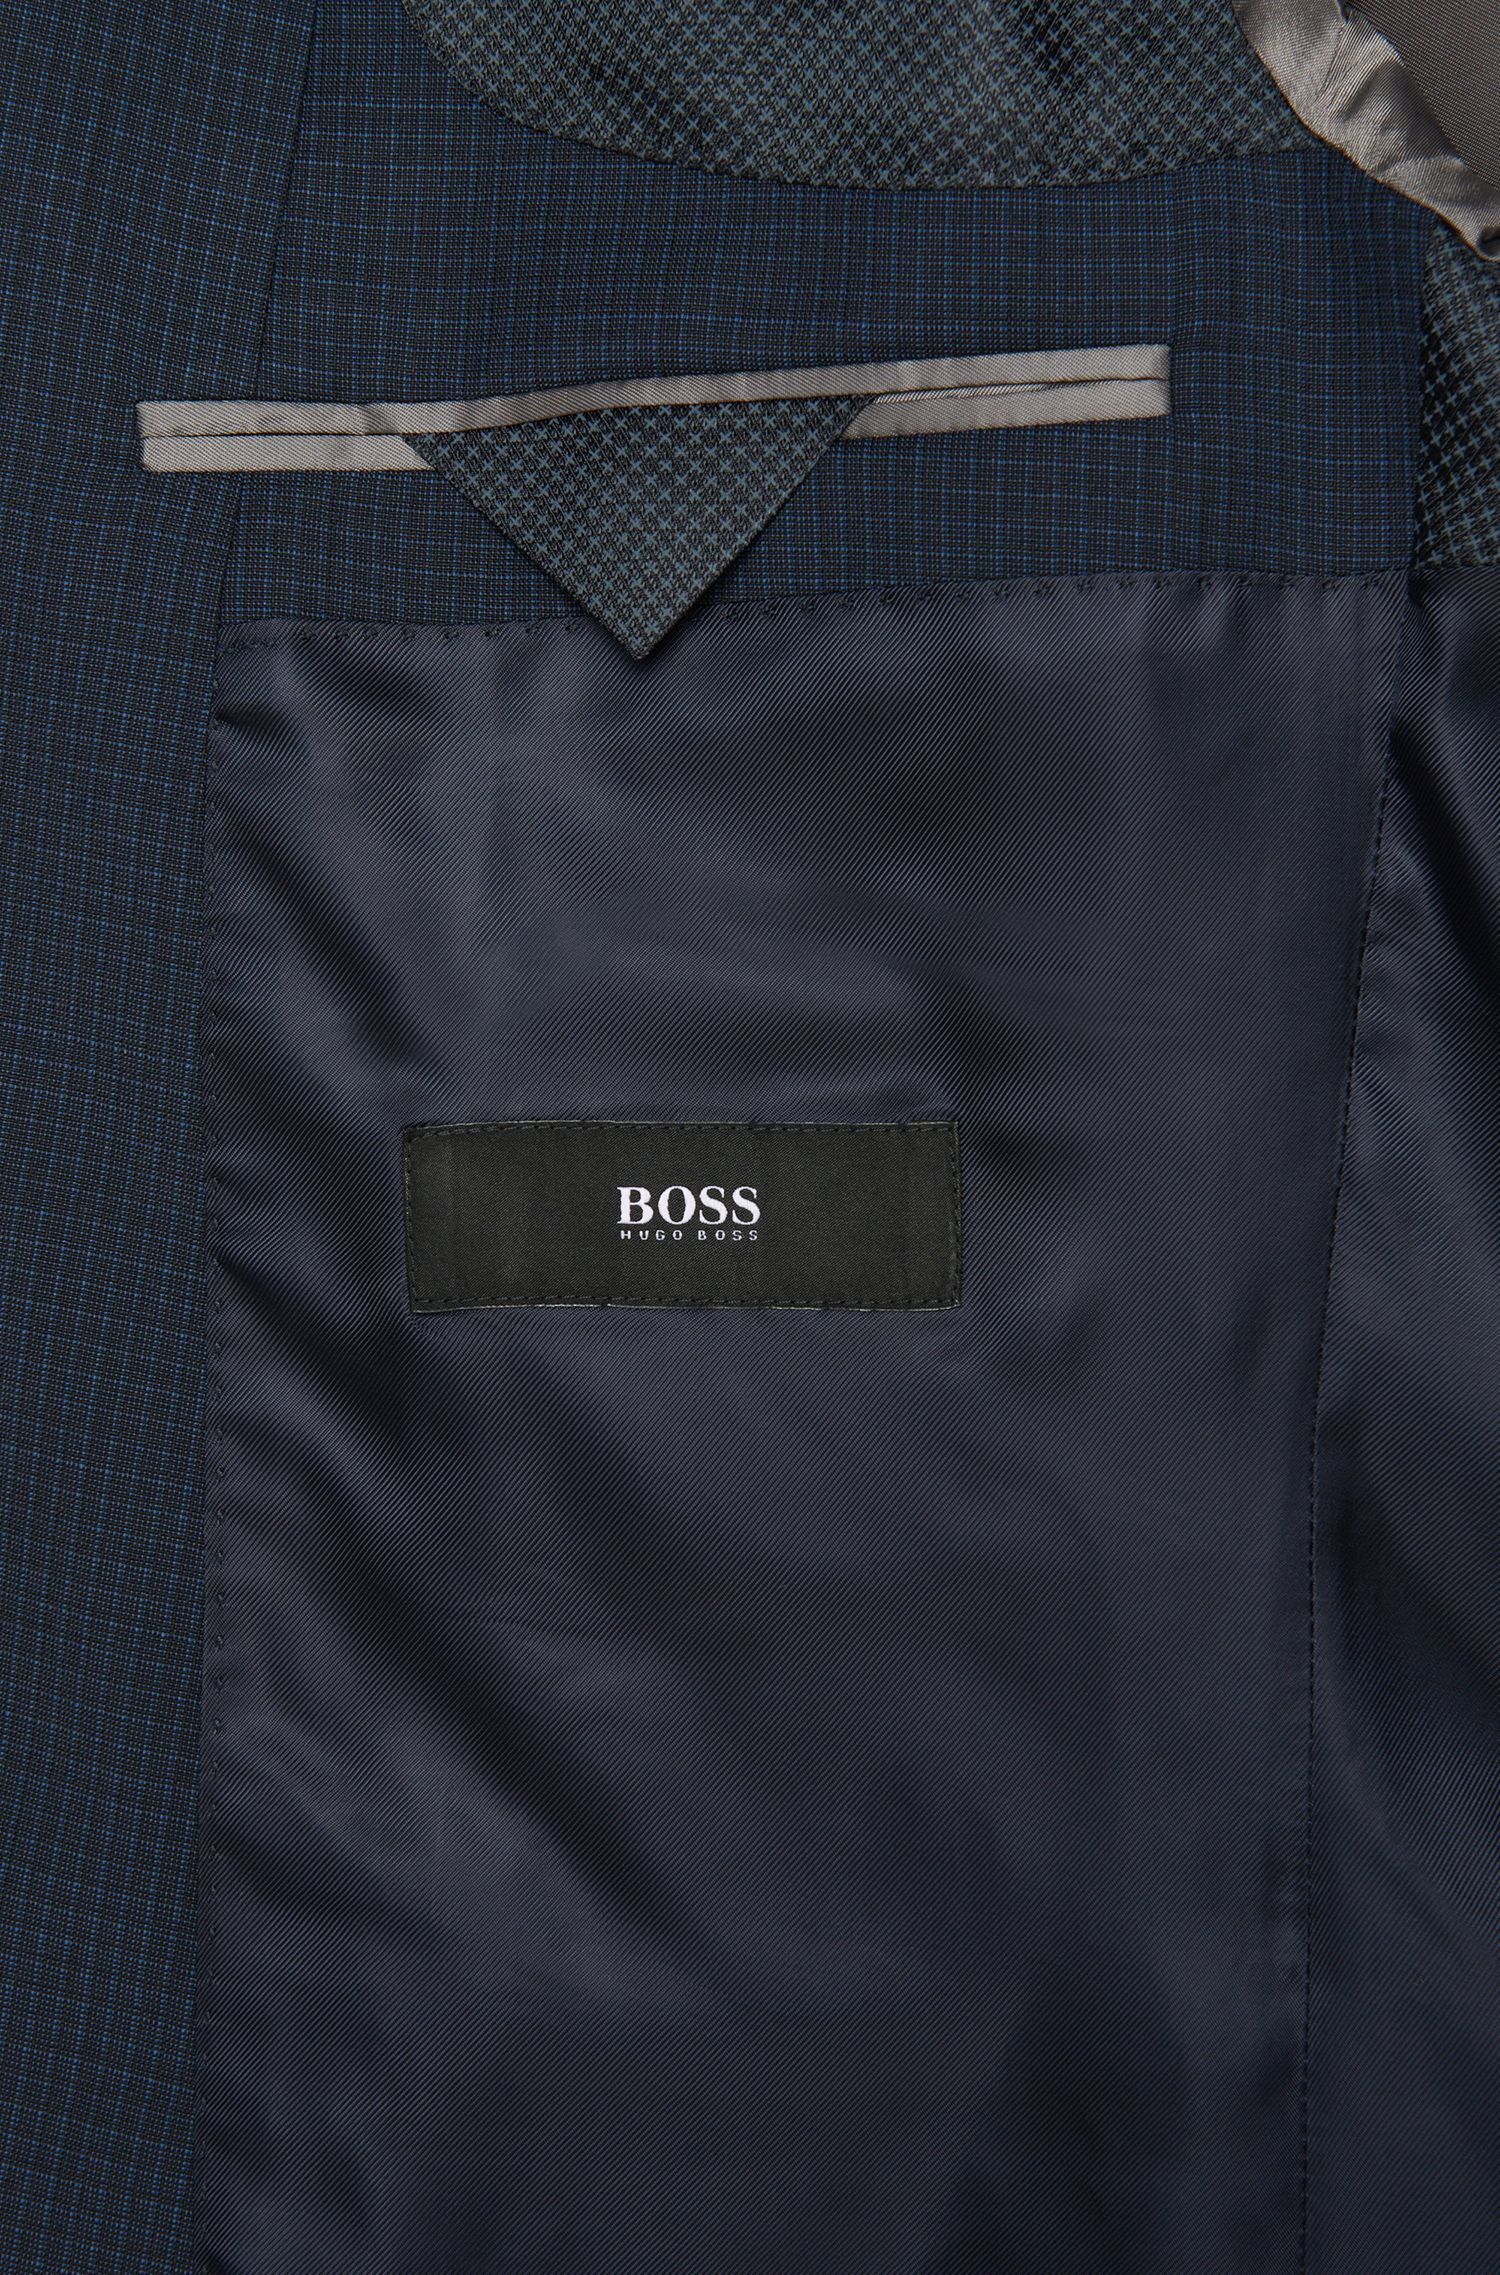 Costume à carreaux Slim Fit BOSS en laine vierge : « Hutson4/Gander1 »